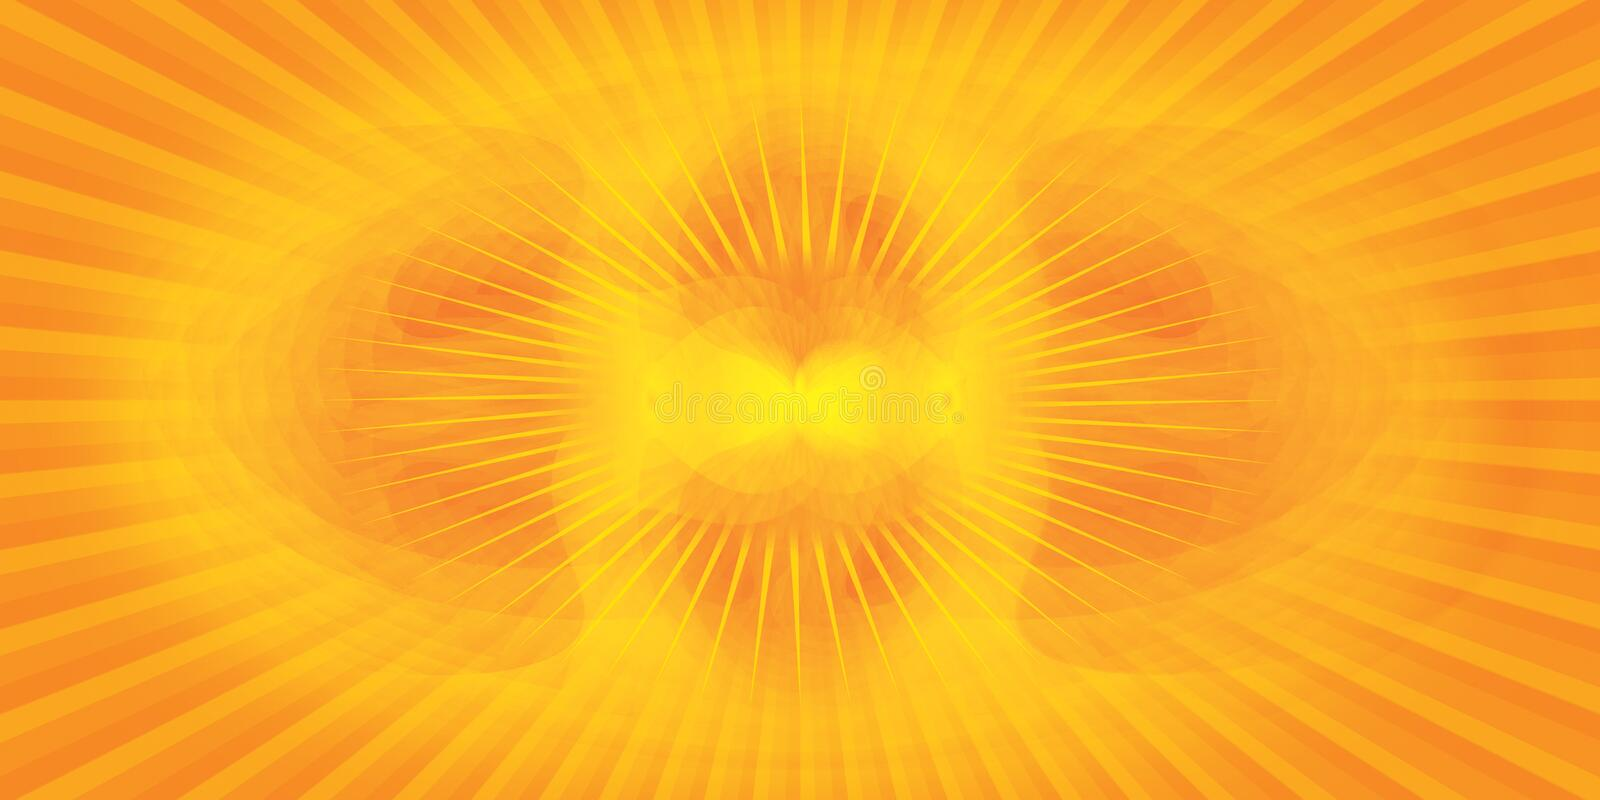 Download Abstract yellow background stock illustration. Illustration of radiance - 2163214